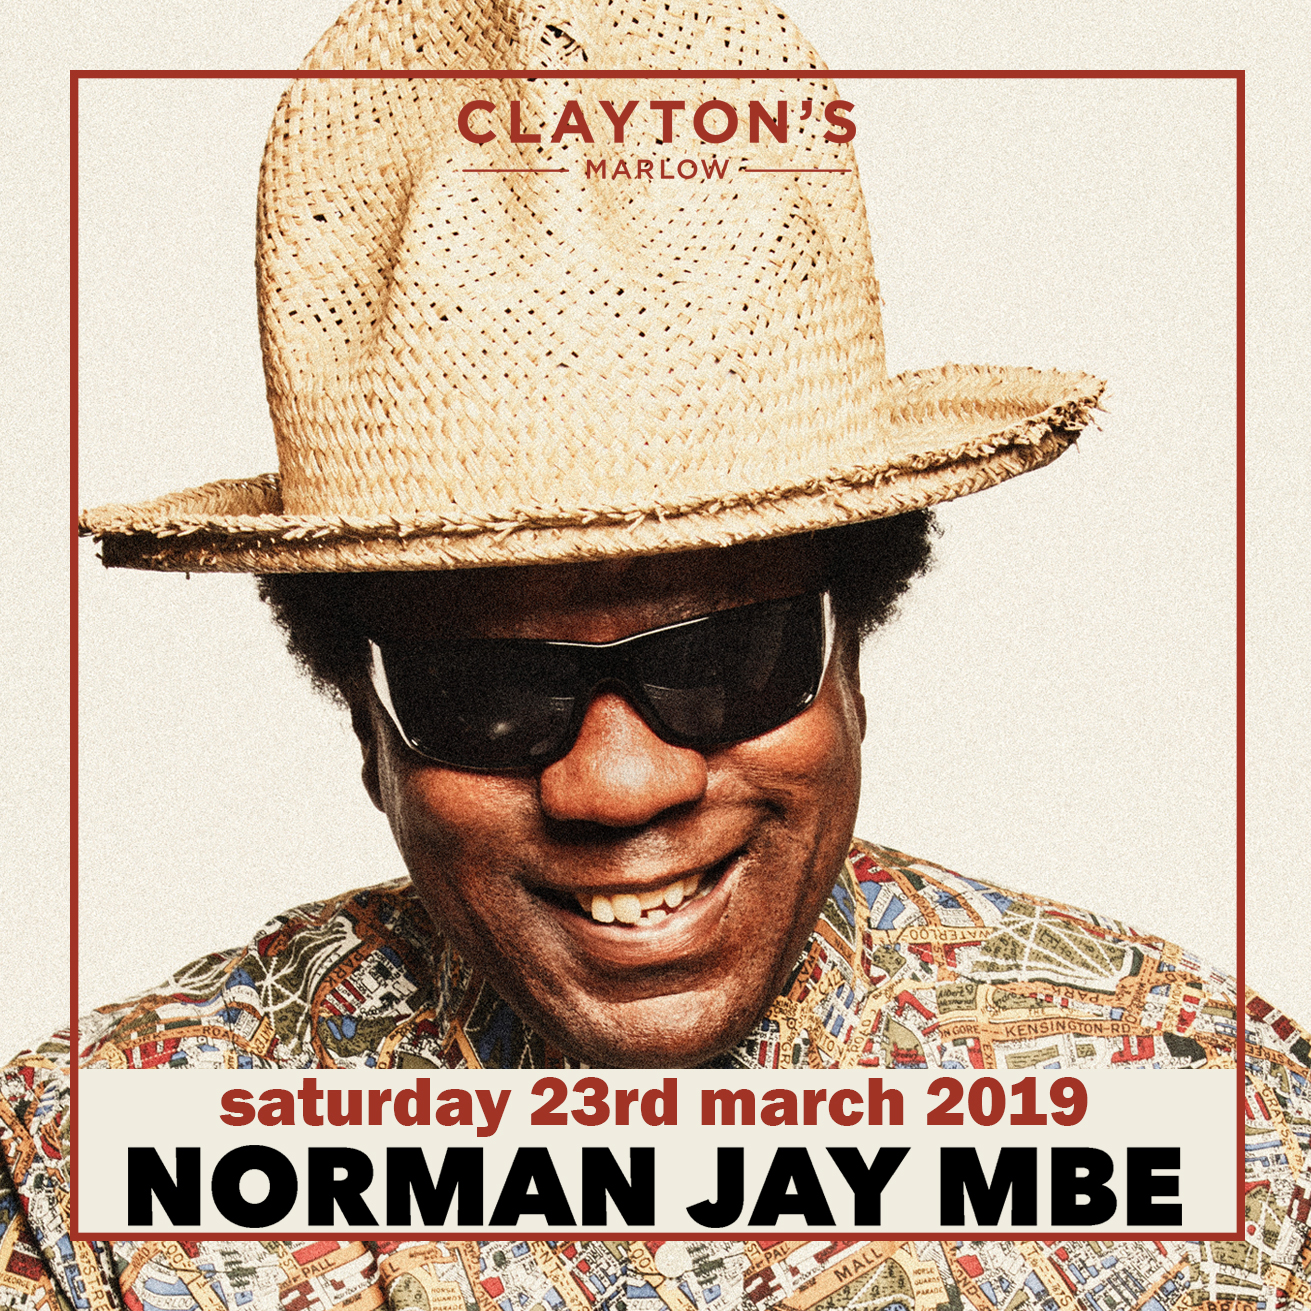 Clayton's Marlow Presents DJ Norman Jay MBE